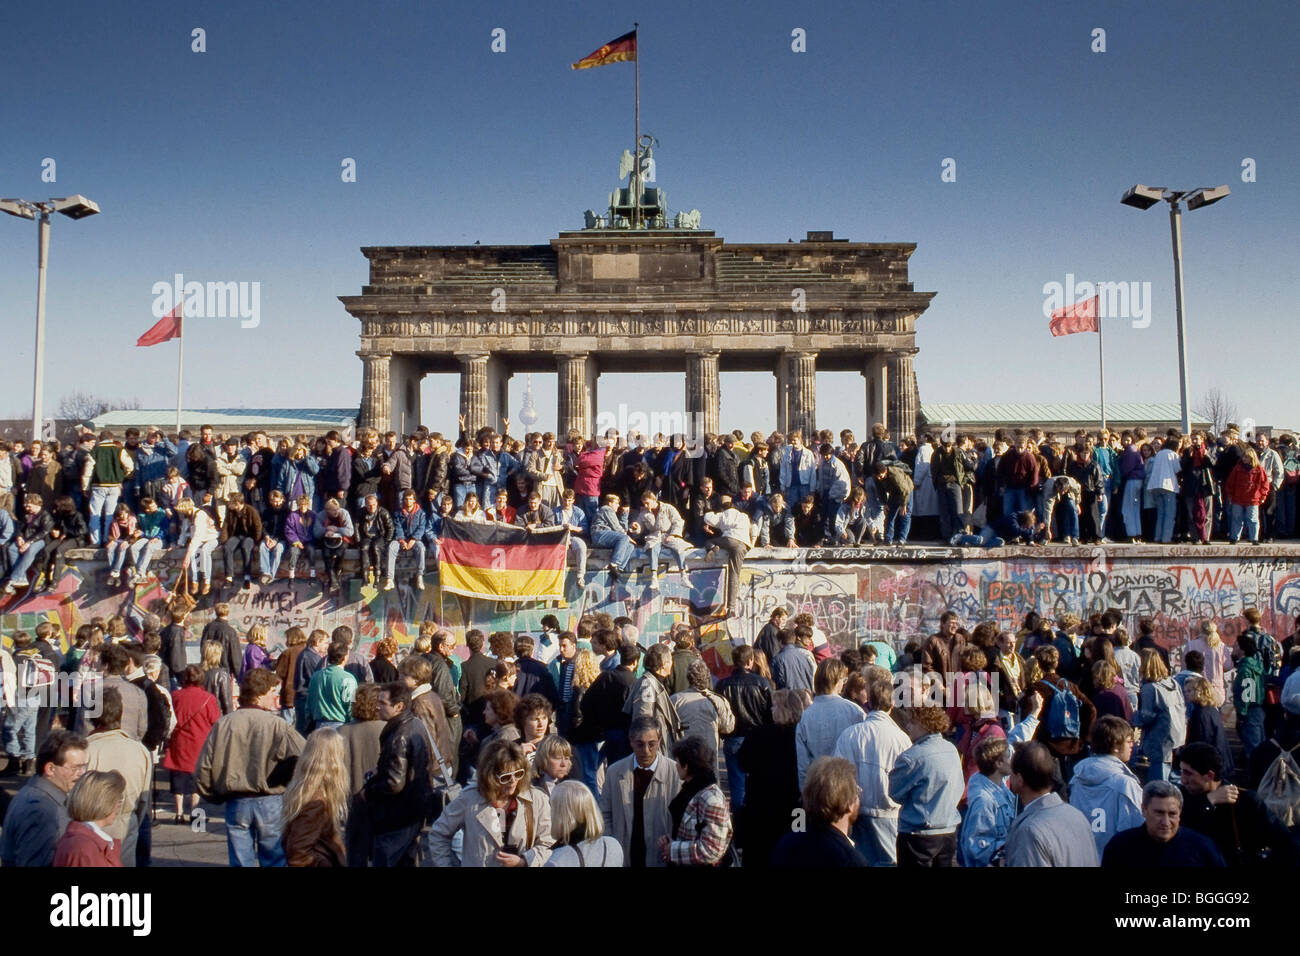 Fall of the Berlin Wall: people from East and West Berlin climbing on the Wall at the Brandenburg Gate, Berlin, Stock Photo